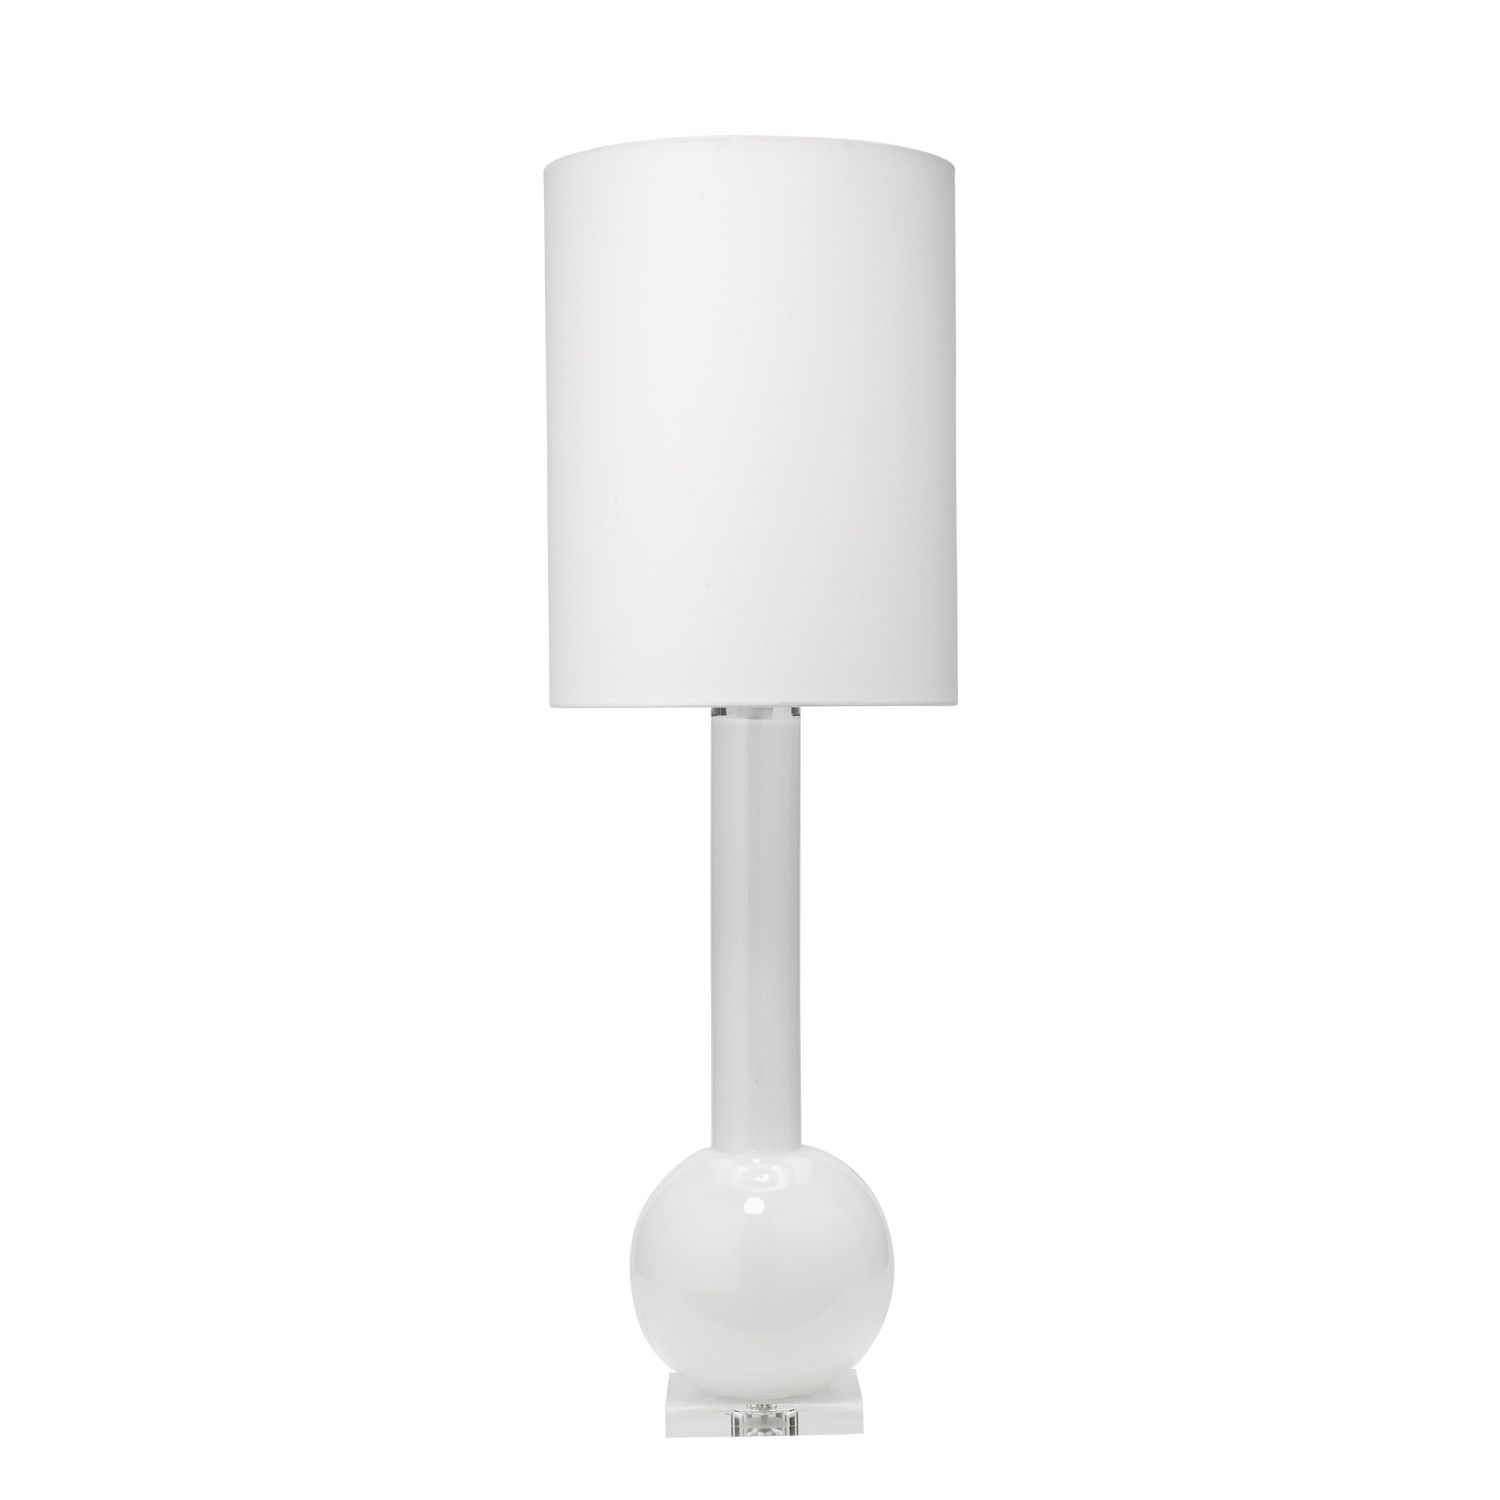 Sarnen White Glass Lamp Shop Lamps And Lighting Glass Lamp Lamp Colorful Lamp Shades